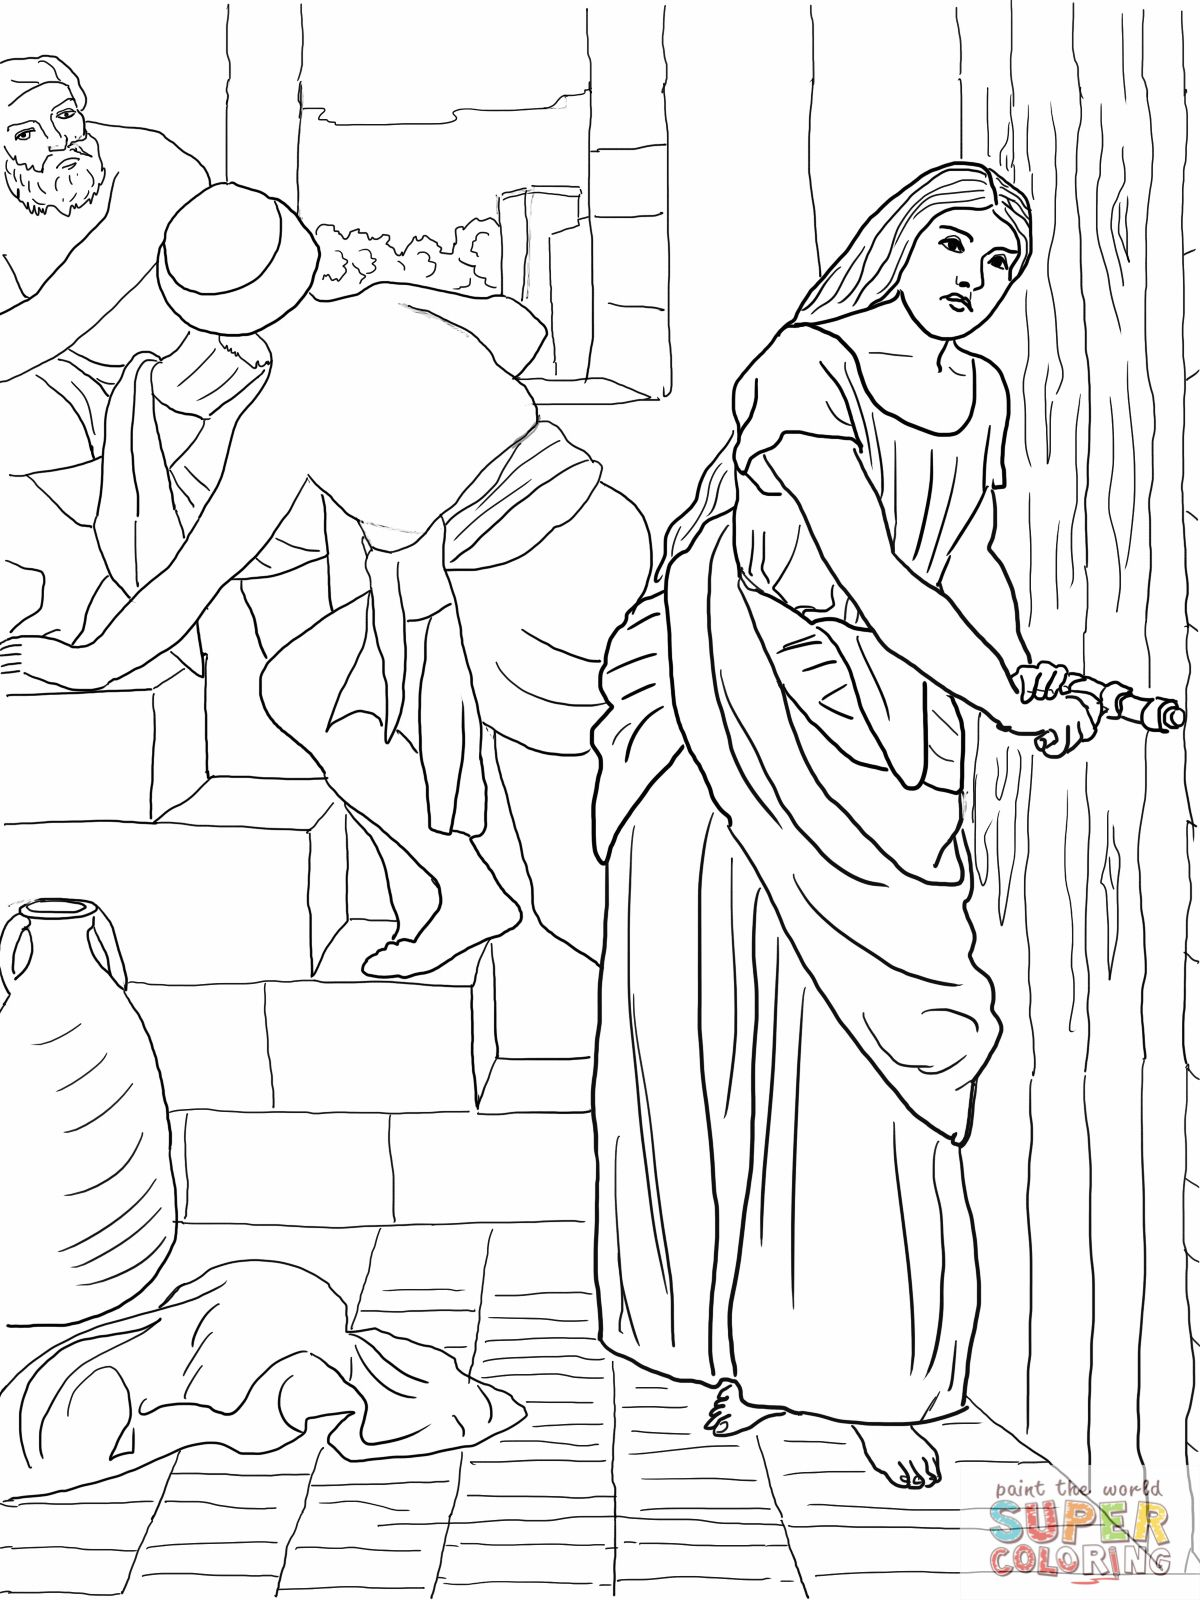 preschool bible coloring pages - photo#45